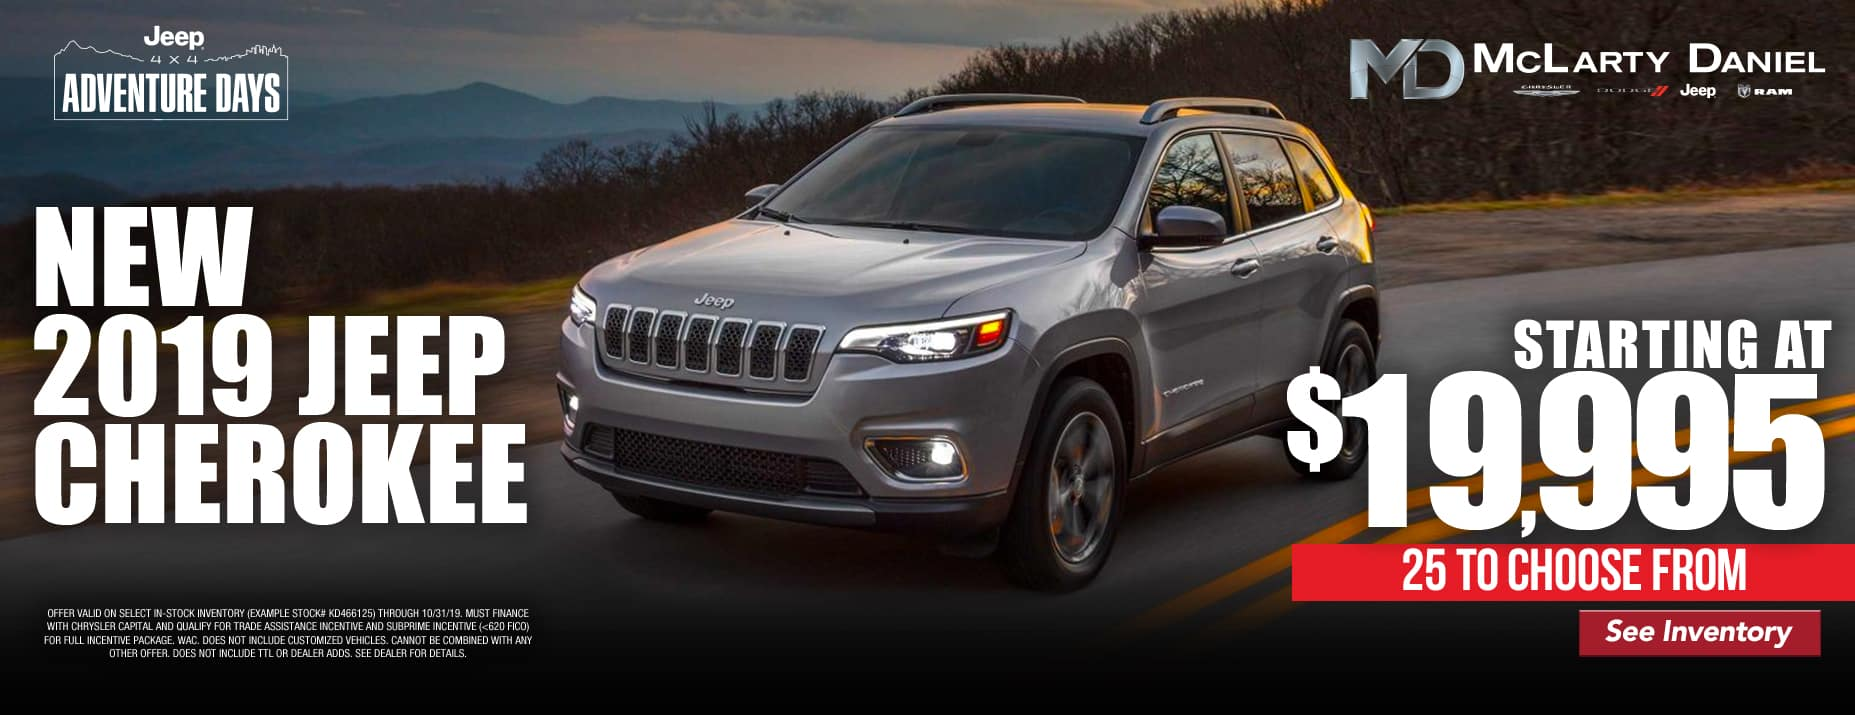 2019 Jeep Cherokee starting at only $19,995! 25 to choose from!